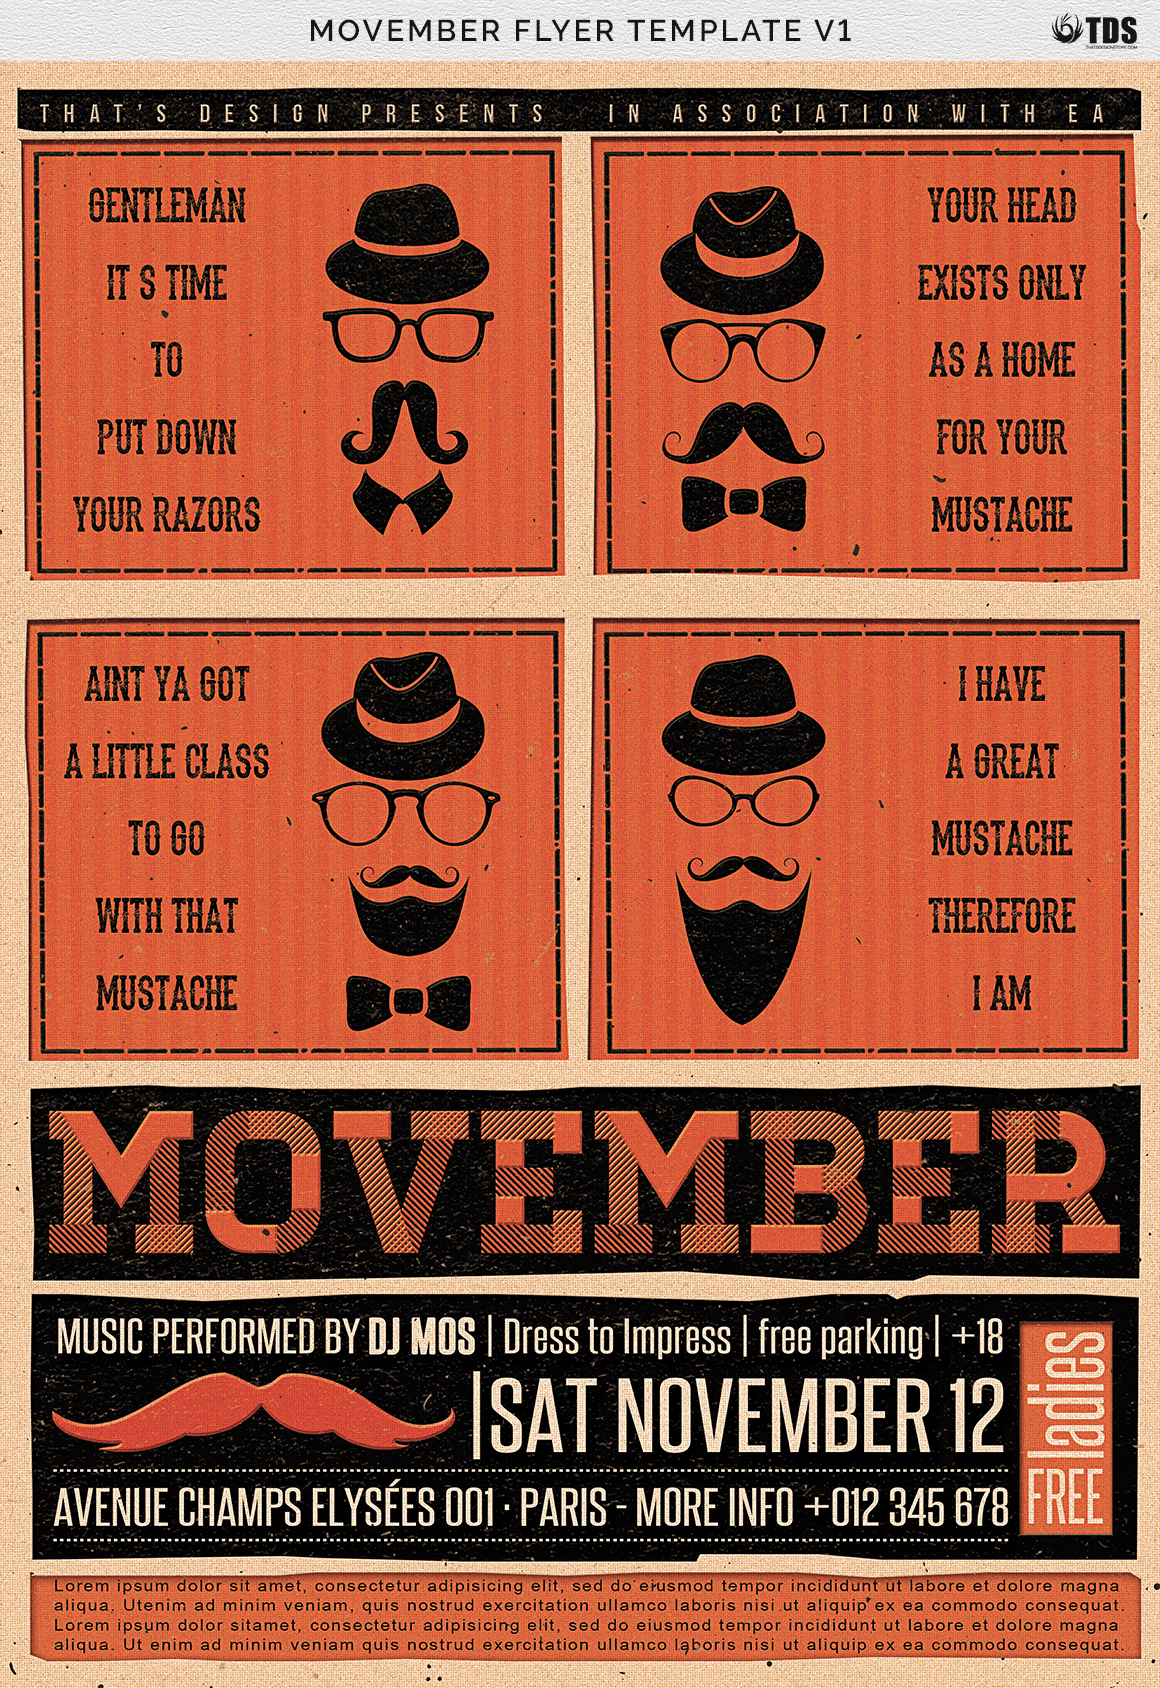 Movember Flyer Template V1 example image 14